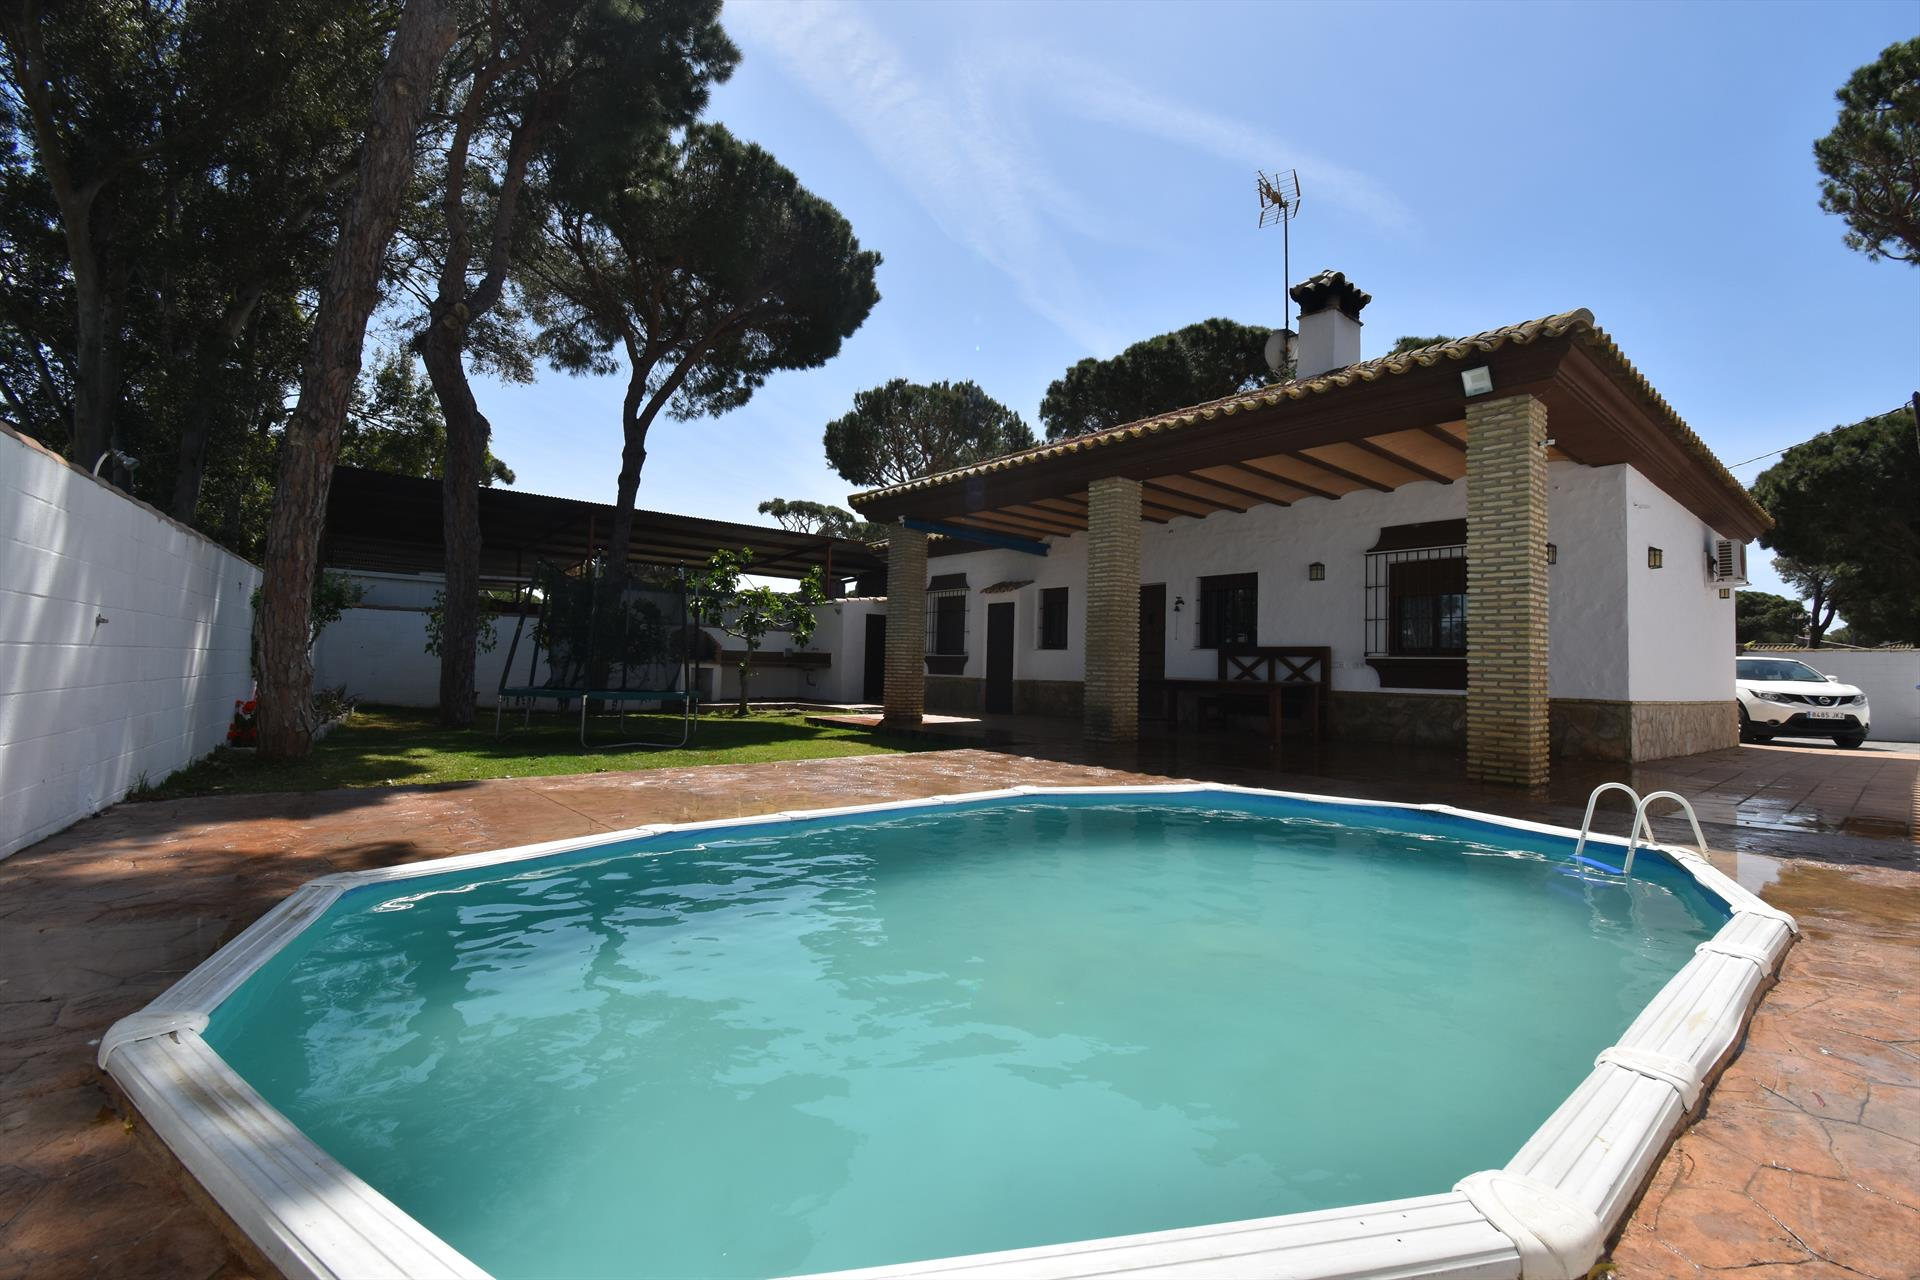 El Limonero,Lovely and comfortable villa  with private pool in Chiclana de la Frontera, Andalusia, Spain for 6 persons.....